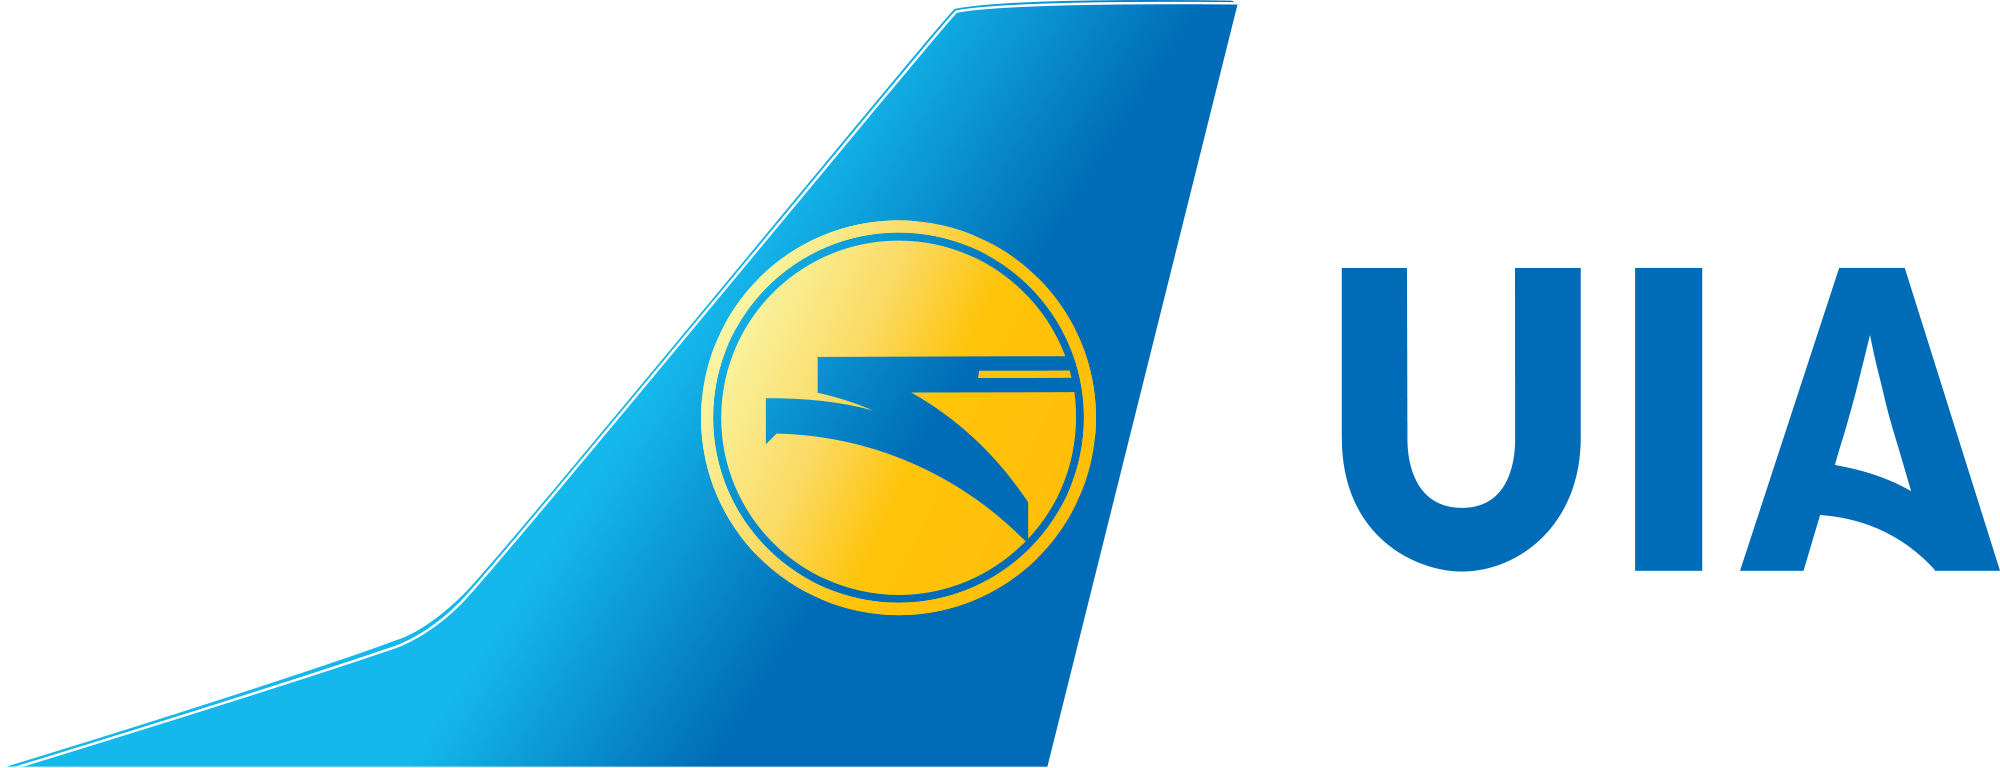 UIA Logo Wallpaper